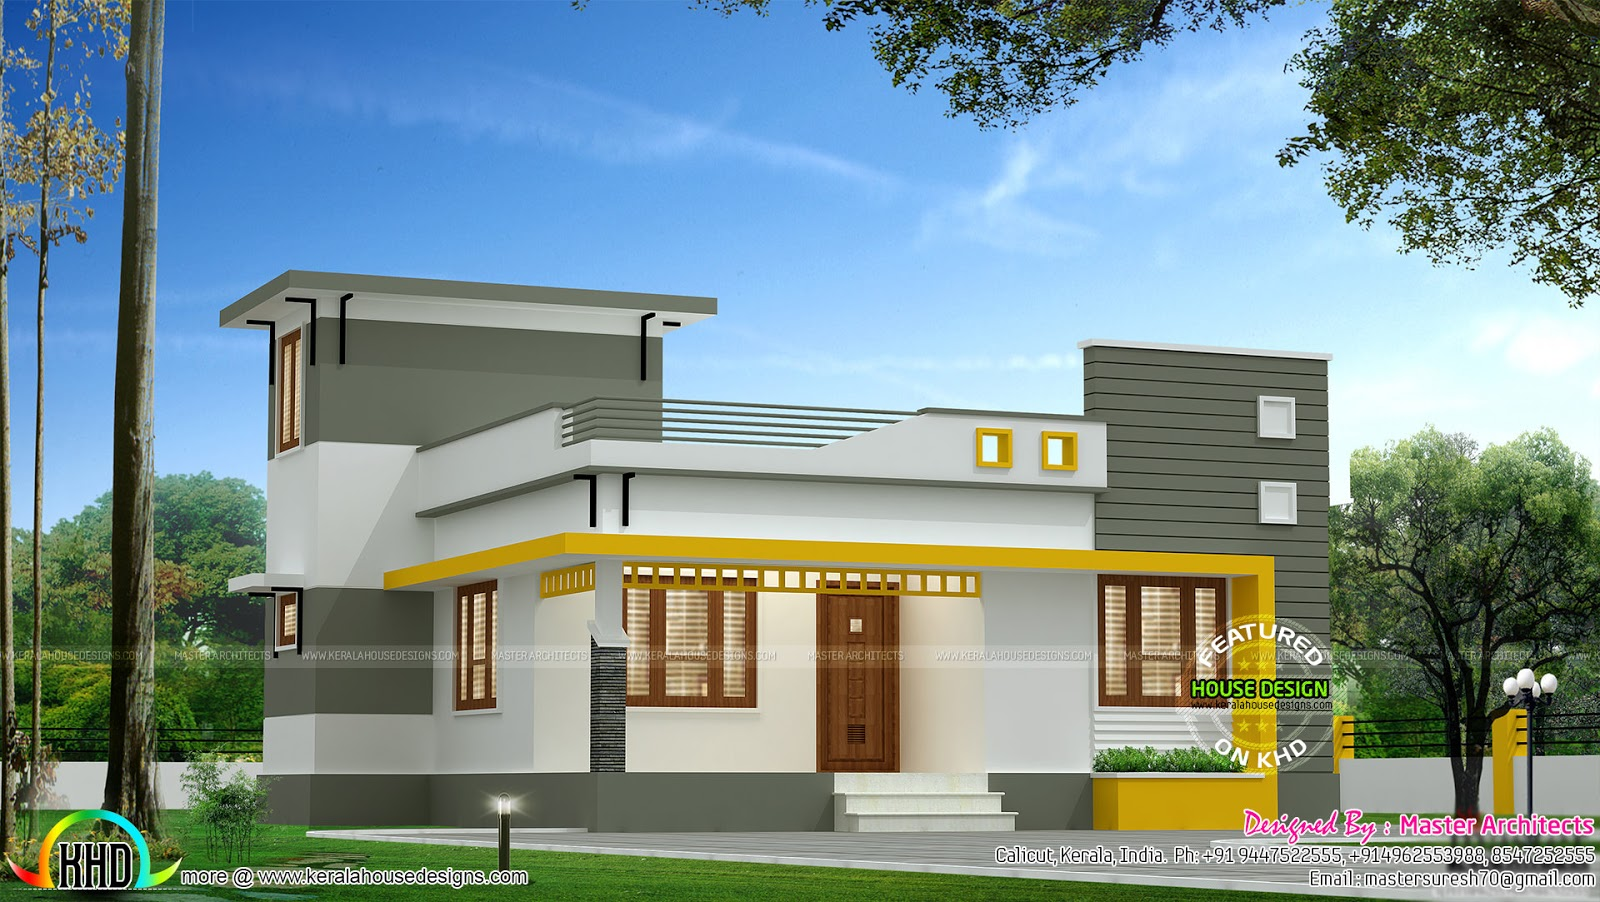 3 bedroom single floor modern architecture home kerala Modern house 1 floor